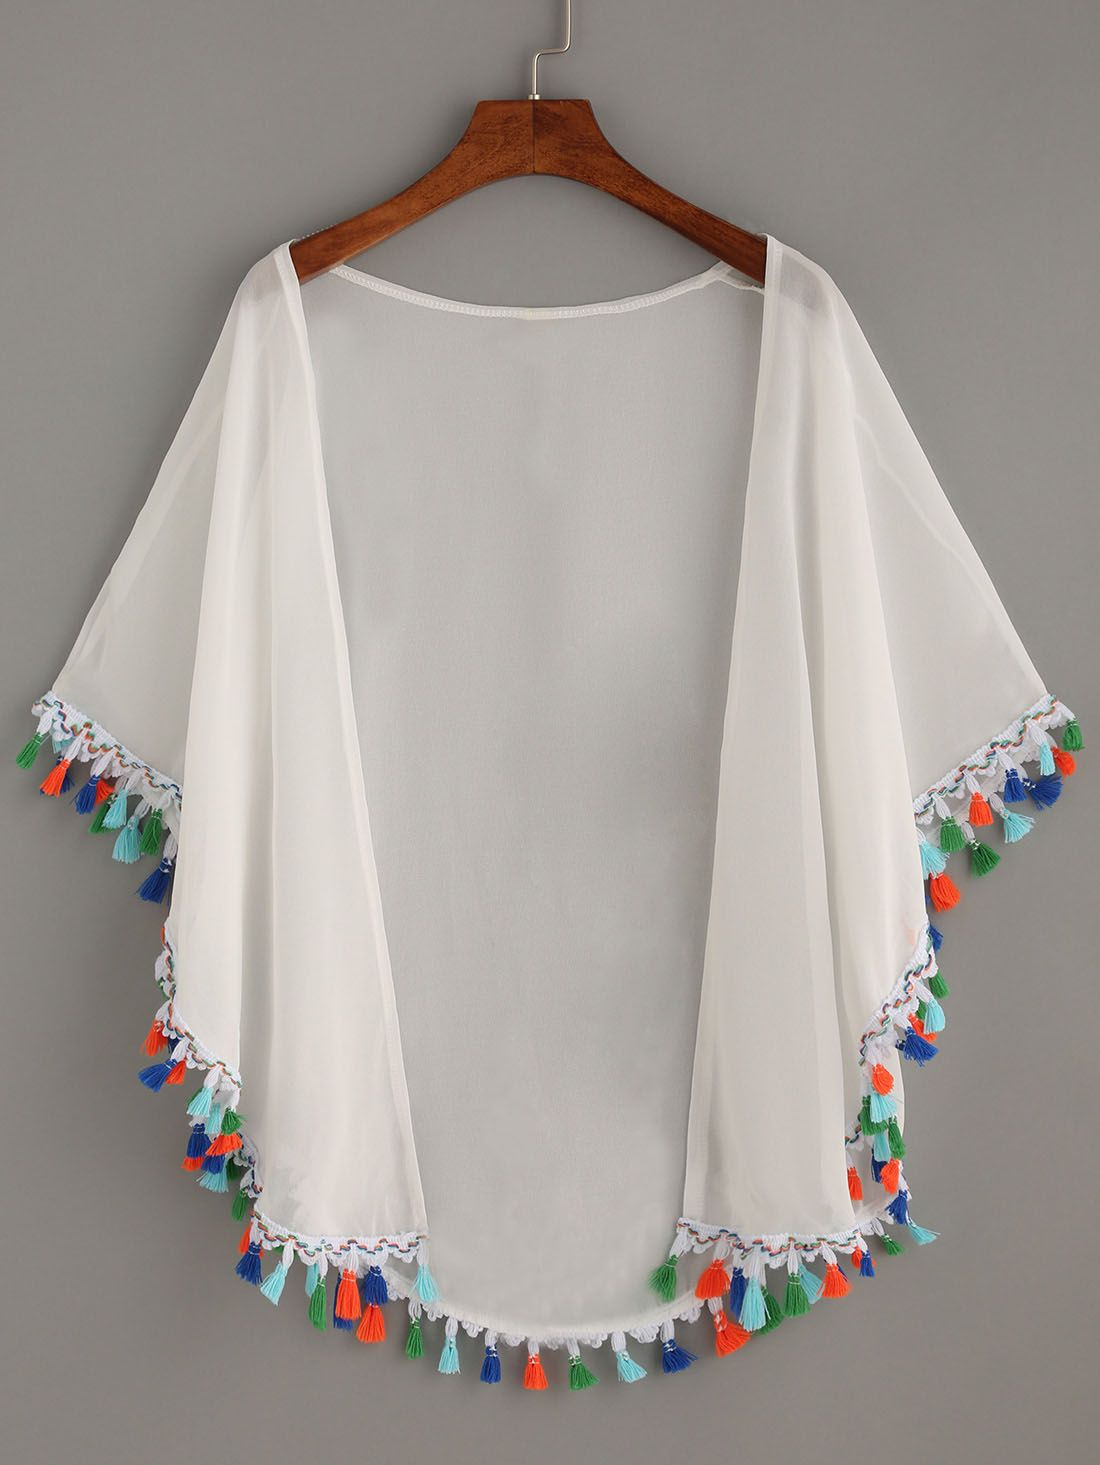 0c18538782 Shop White Tassel Trimmed Chiffon Top online. SheIn offers White Tassel  Trimmed Chiffon Top & more to fit your fashionable needs.